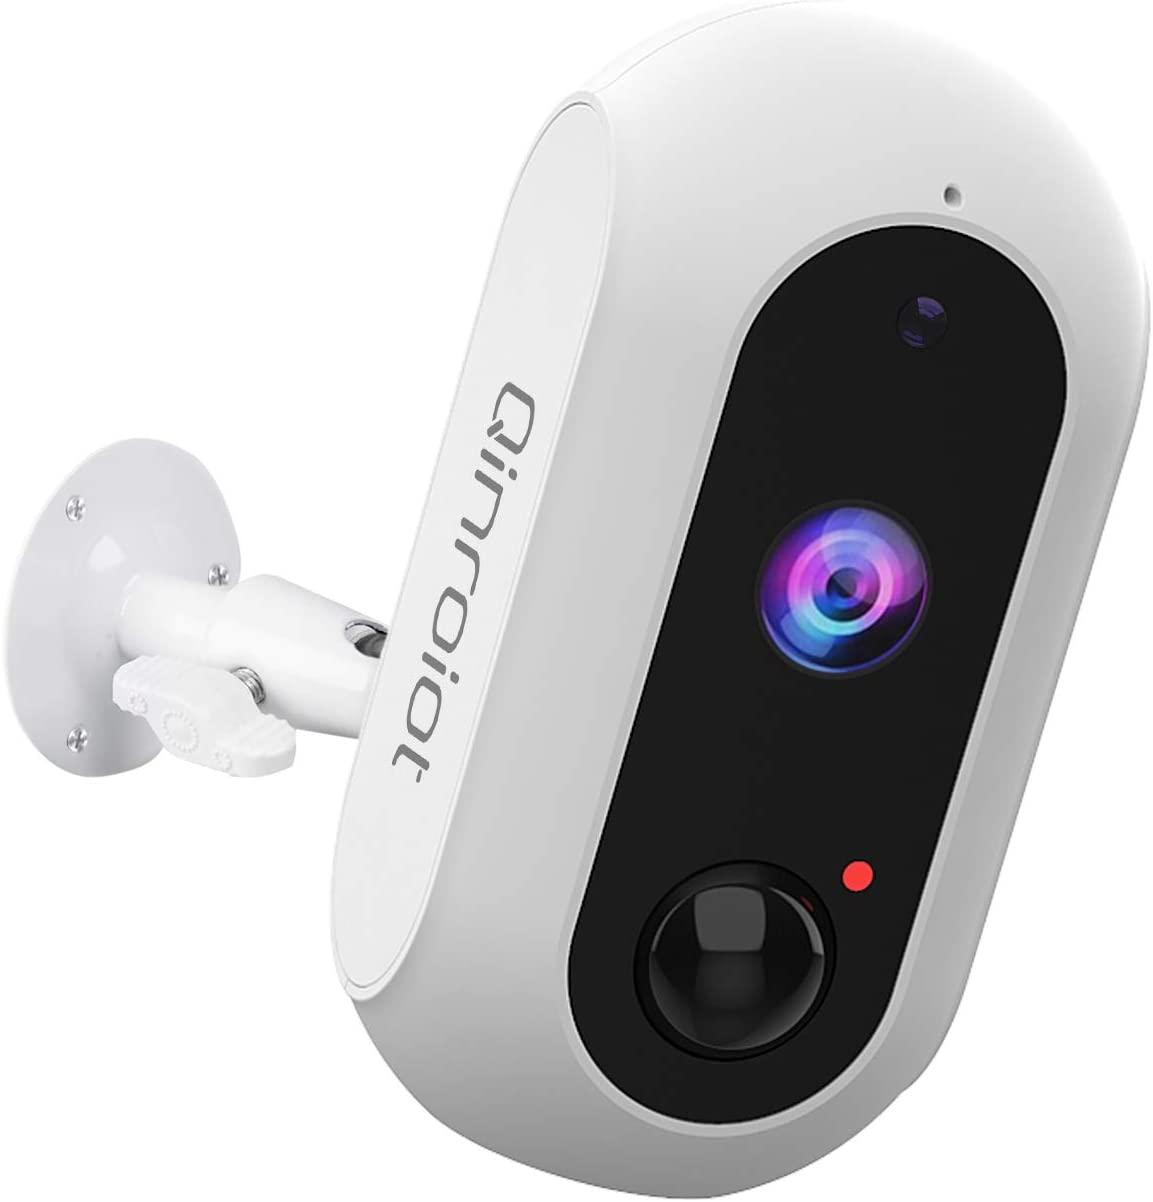 Home Security Camera, 6700mAh Wireless Rechargeable Battery Powered Outdoor&Indoor Wi-Fi Camera with 1080P Night Vision,PIR Motion Detection, Two-Way Audio, IP65 Waterproof, Support Cloud/SD Slot